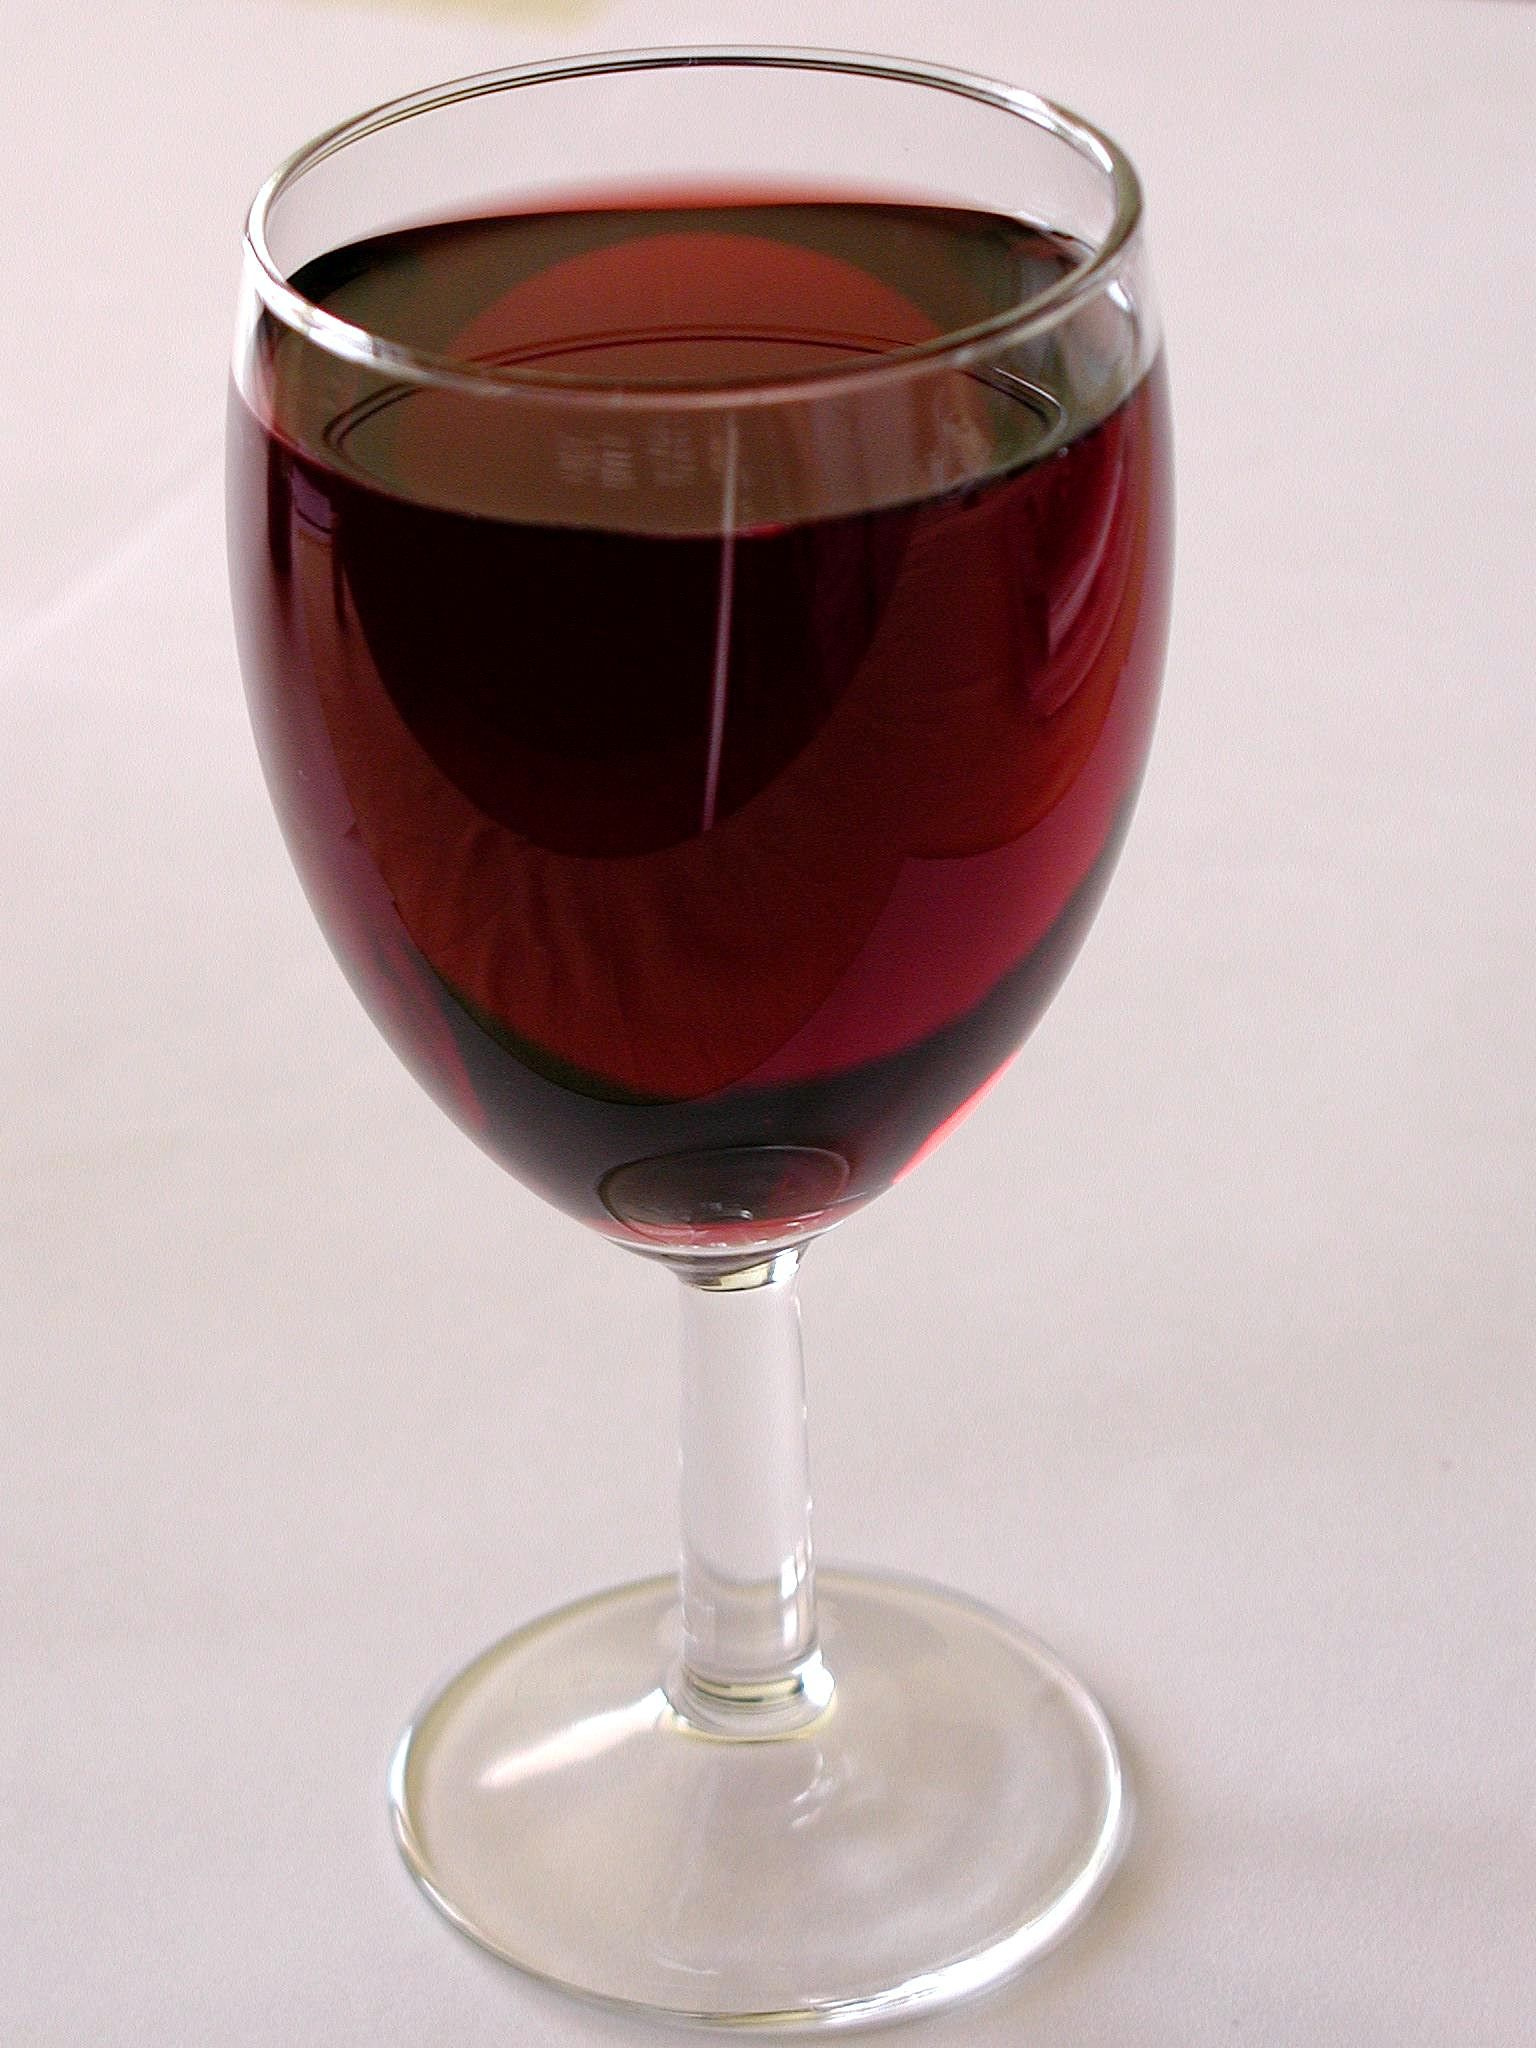 Http Commons Wikimedia Org Wiki File Red Wine In Glass Jpg